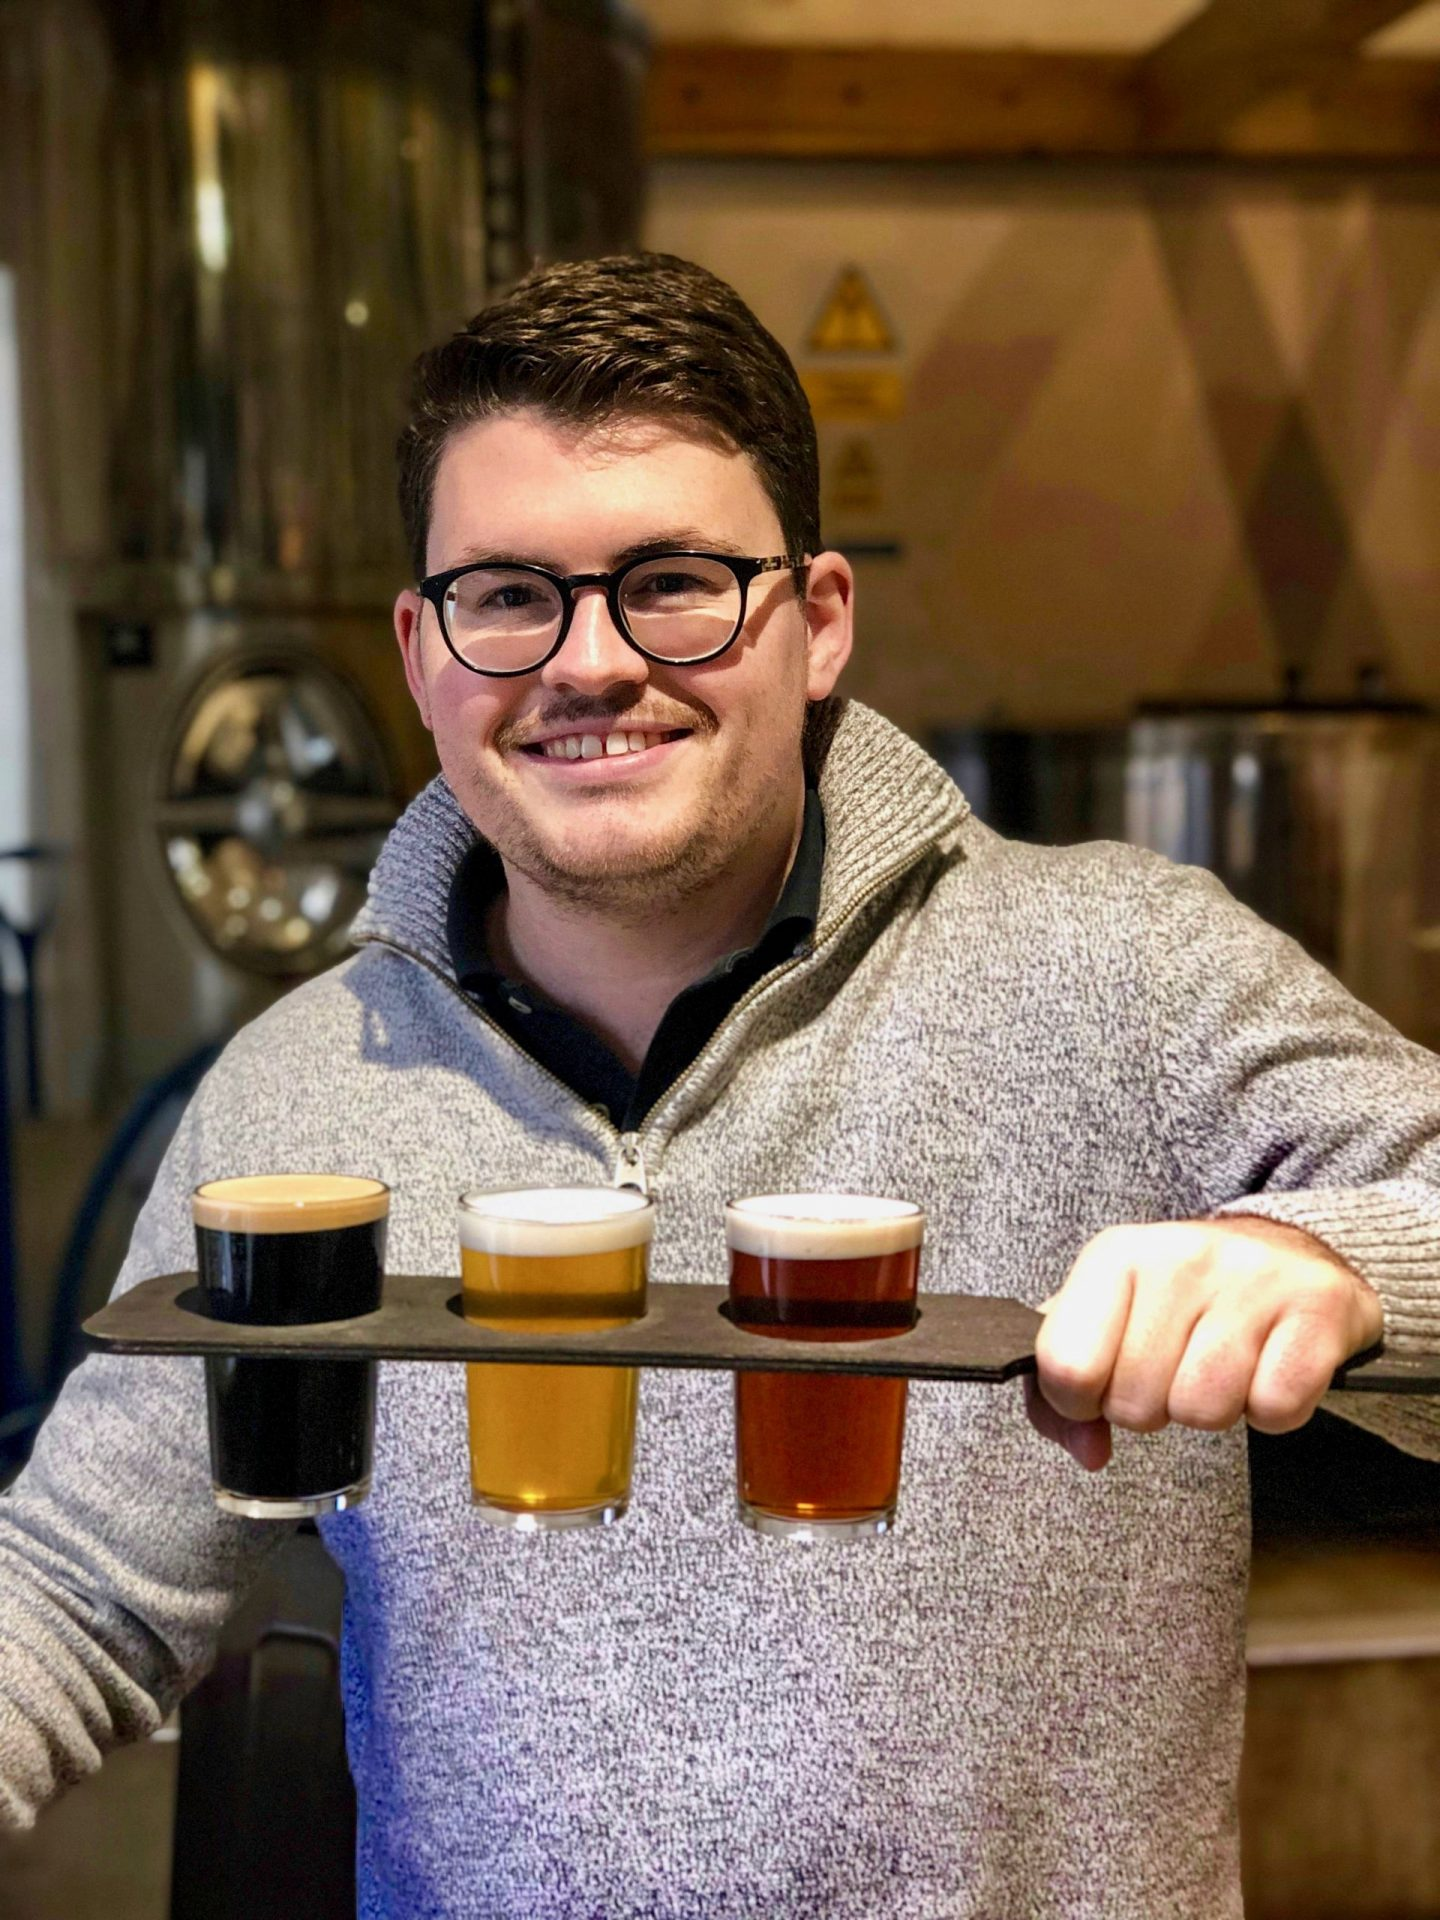 Things to do in Helmsley North Yorkshire: Nell's boyfriend holding a tasting flight of beer and looking very happy with himself